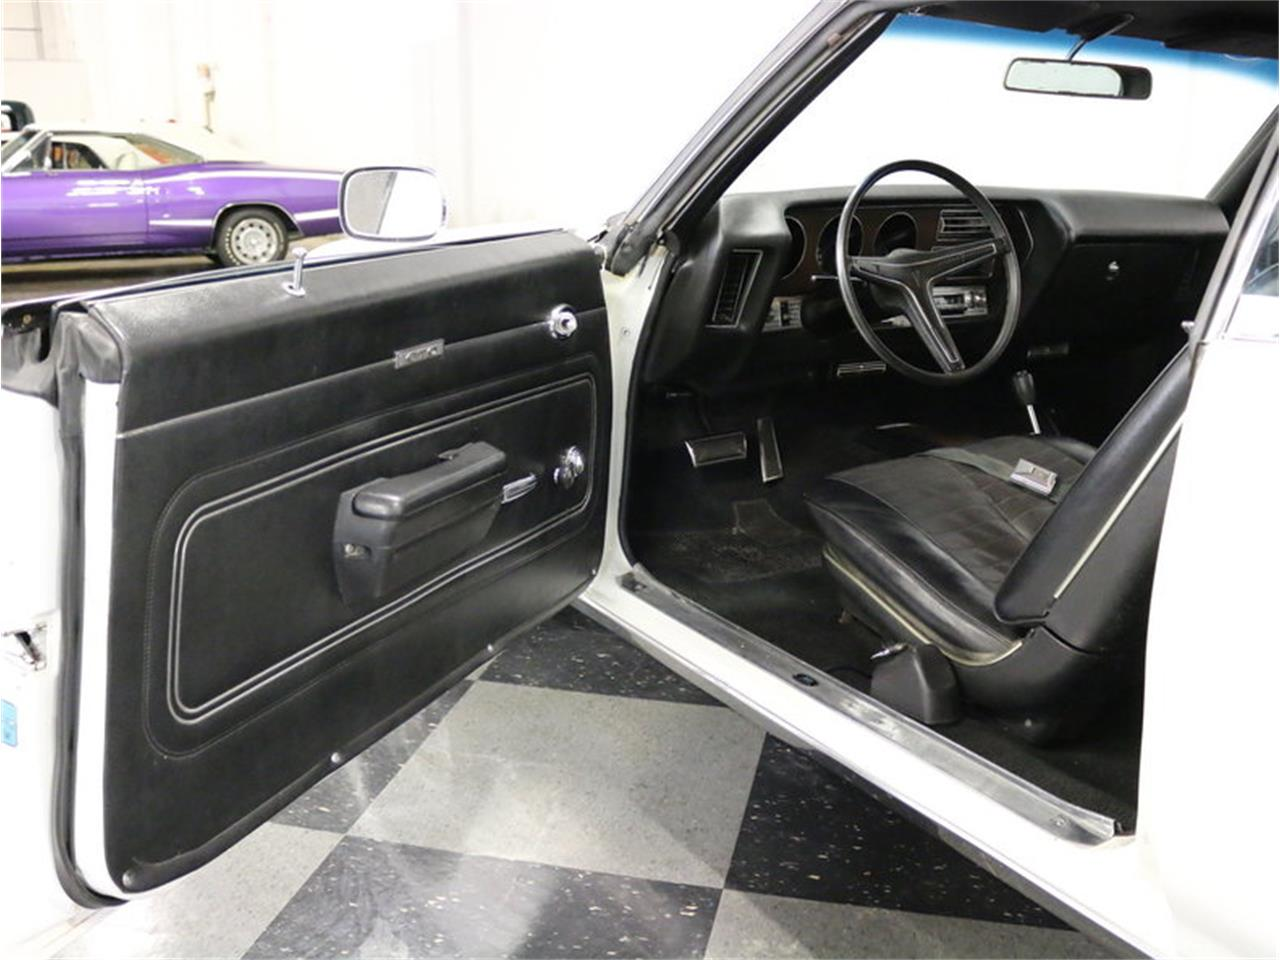 Large Picture of Classic '71 Pontiac GTO located in Texas - $39,995.00 Offered by Streetside Classics - Dallas / Fort Worth - MOBK